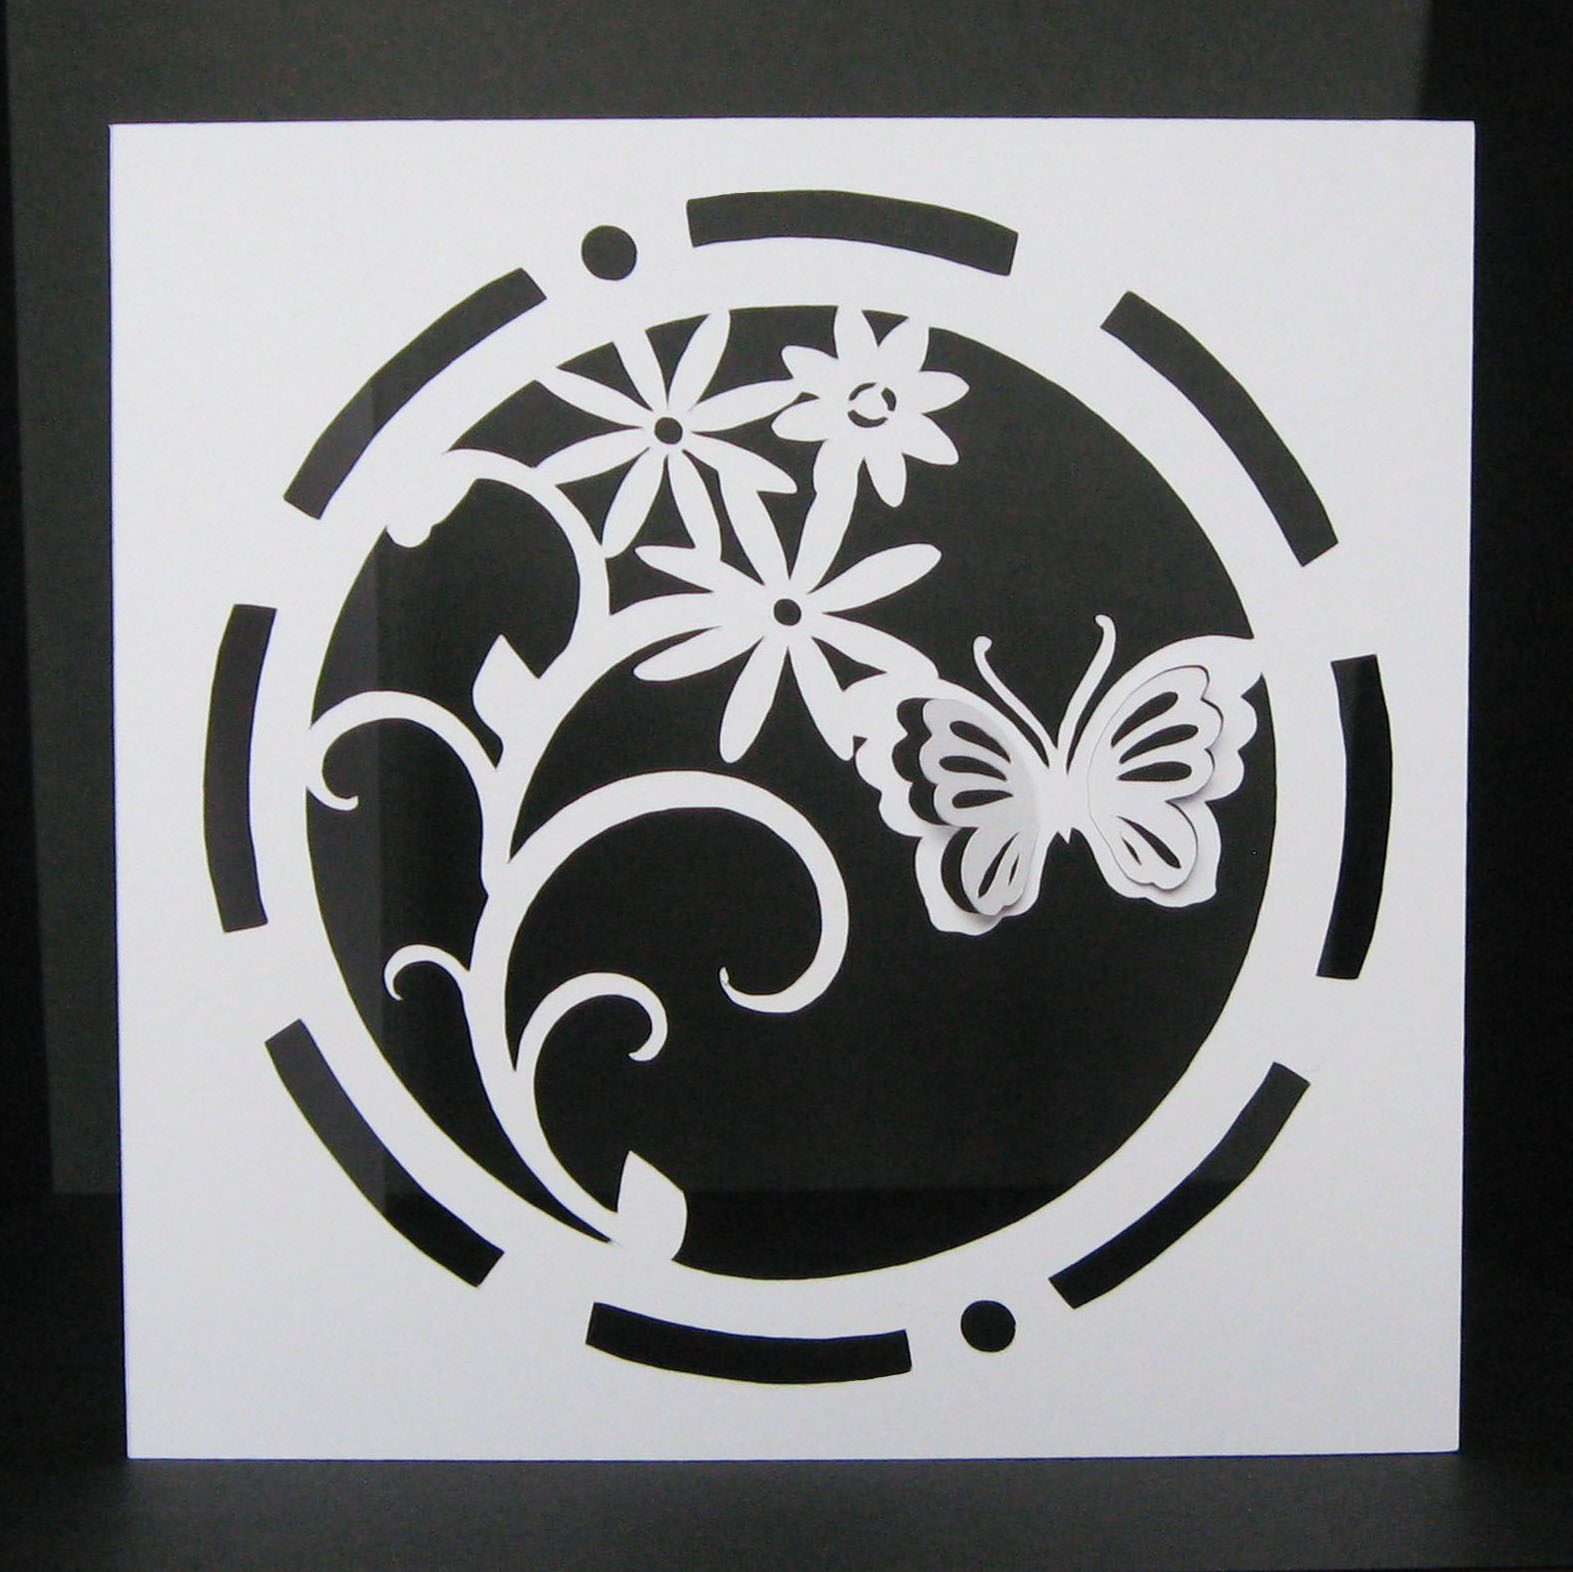 circle butterfly card template 5 x 5 inch. Black Bedroom Furniture Sets. Home Design Ideas